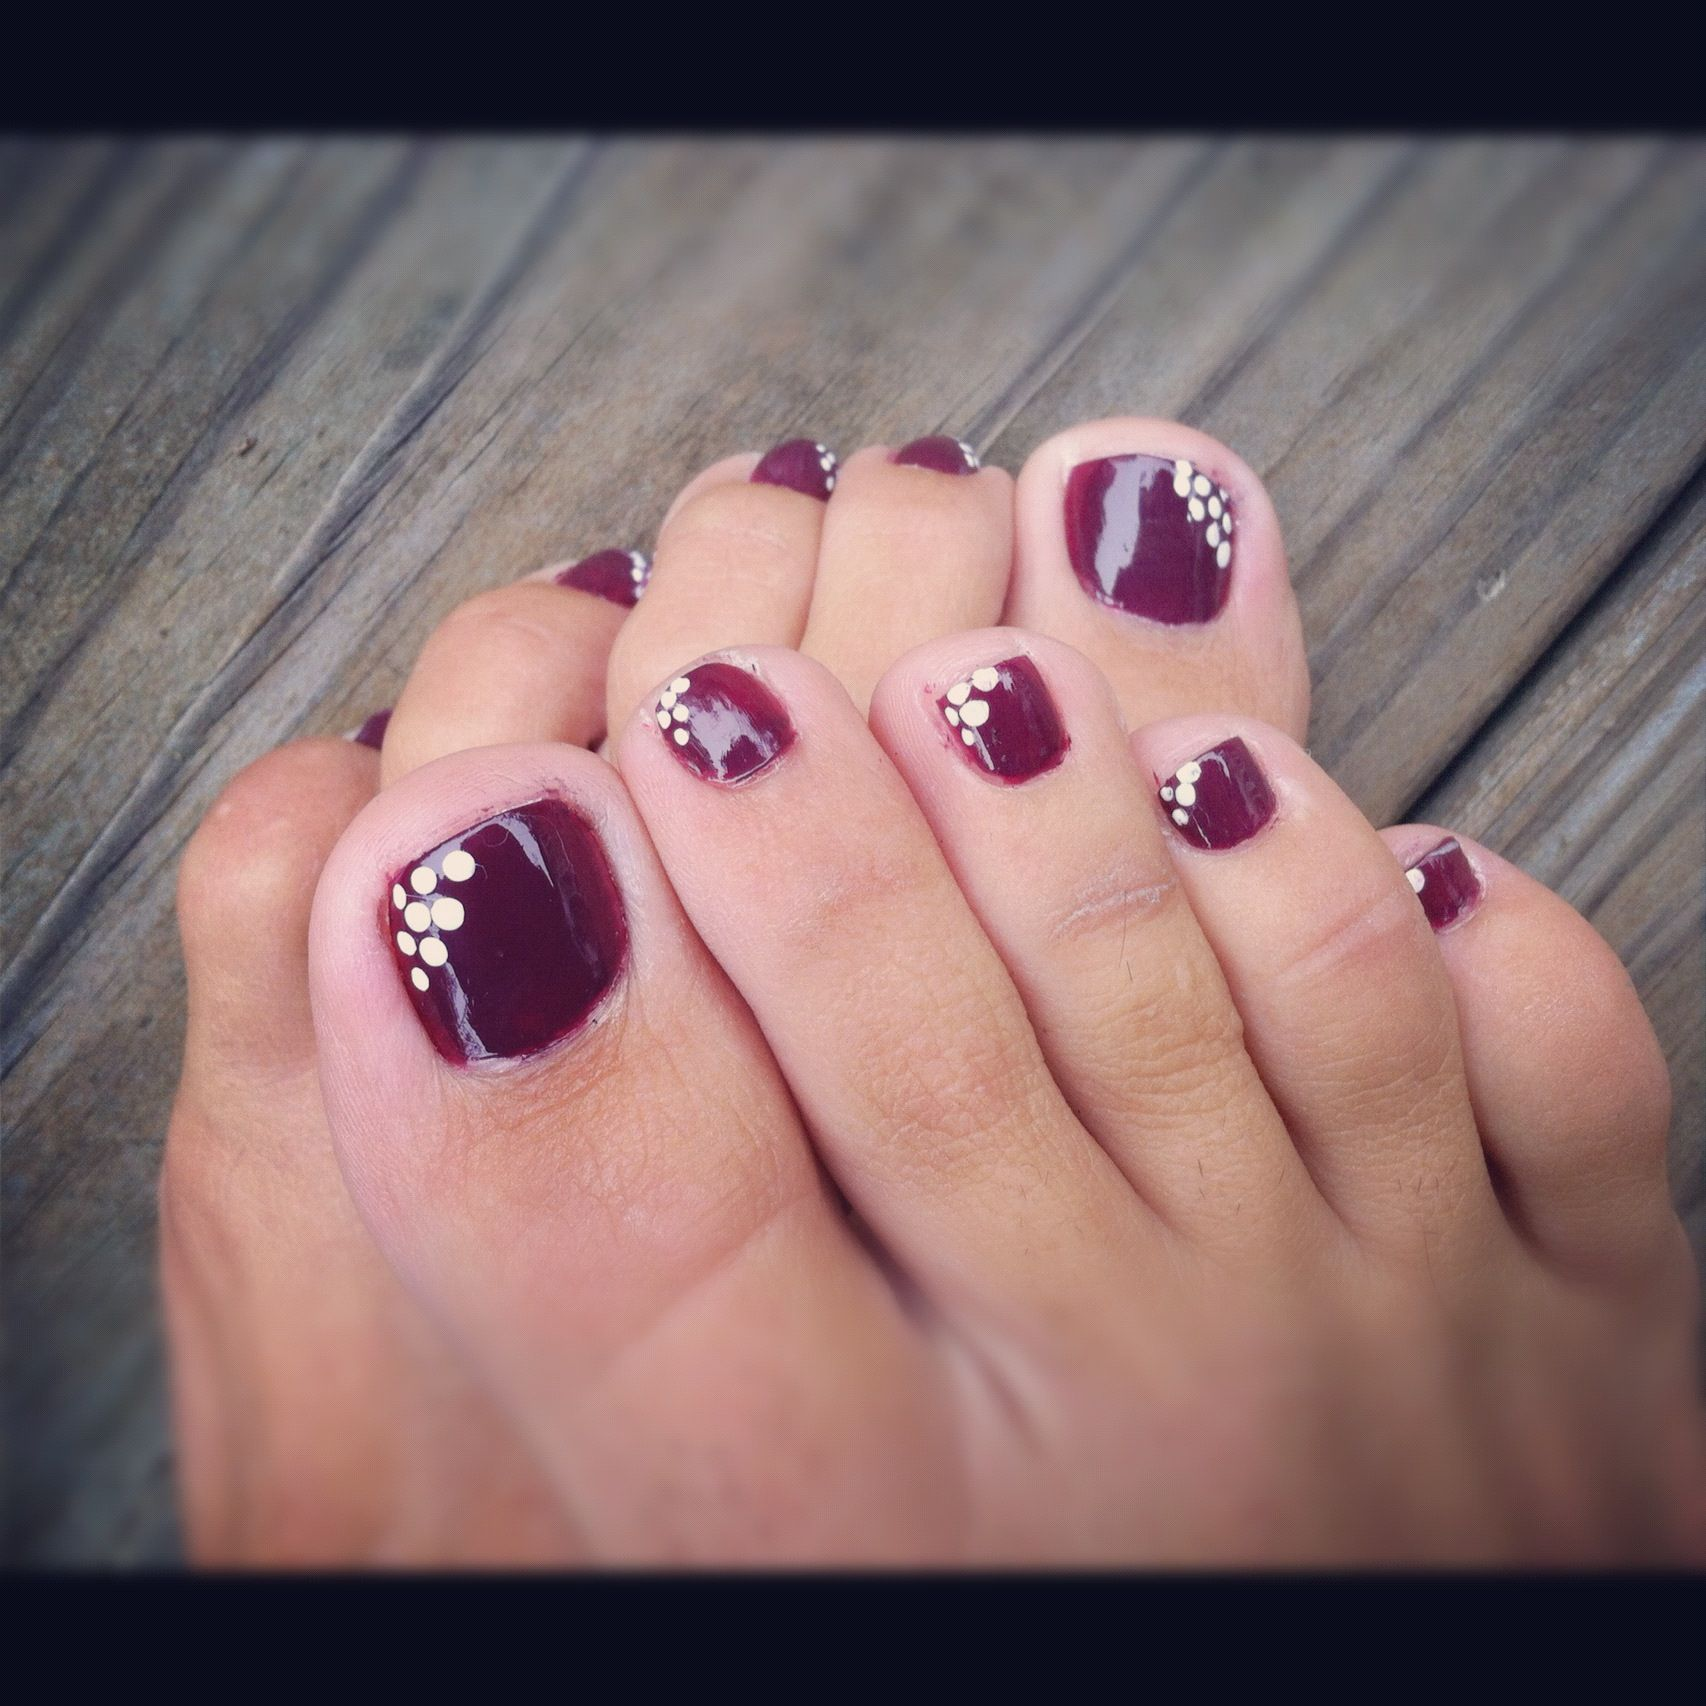 Pretty Pedicure Purple Polish With White Dots On The Inner Corner Of Each Toe Nail Love This Fall Toe Nails Toe Nail Designs Purple Toe Nails